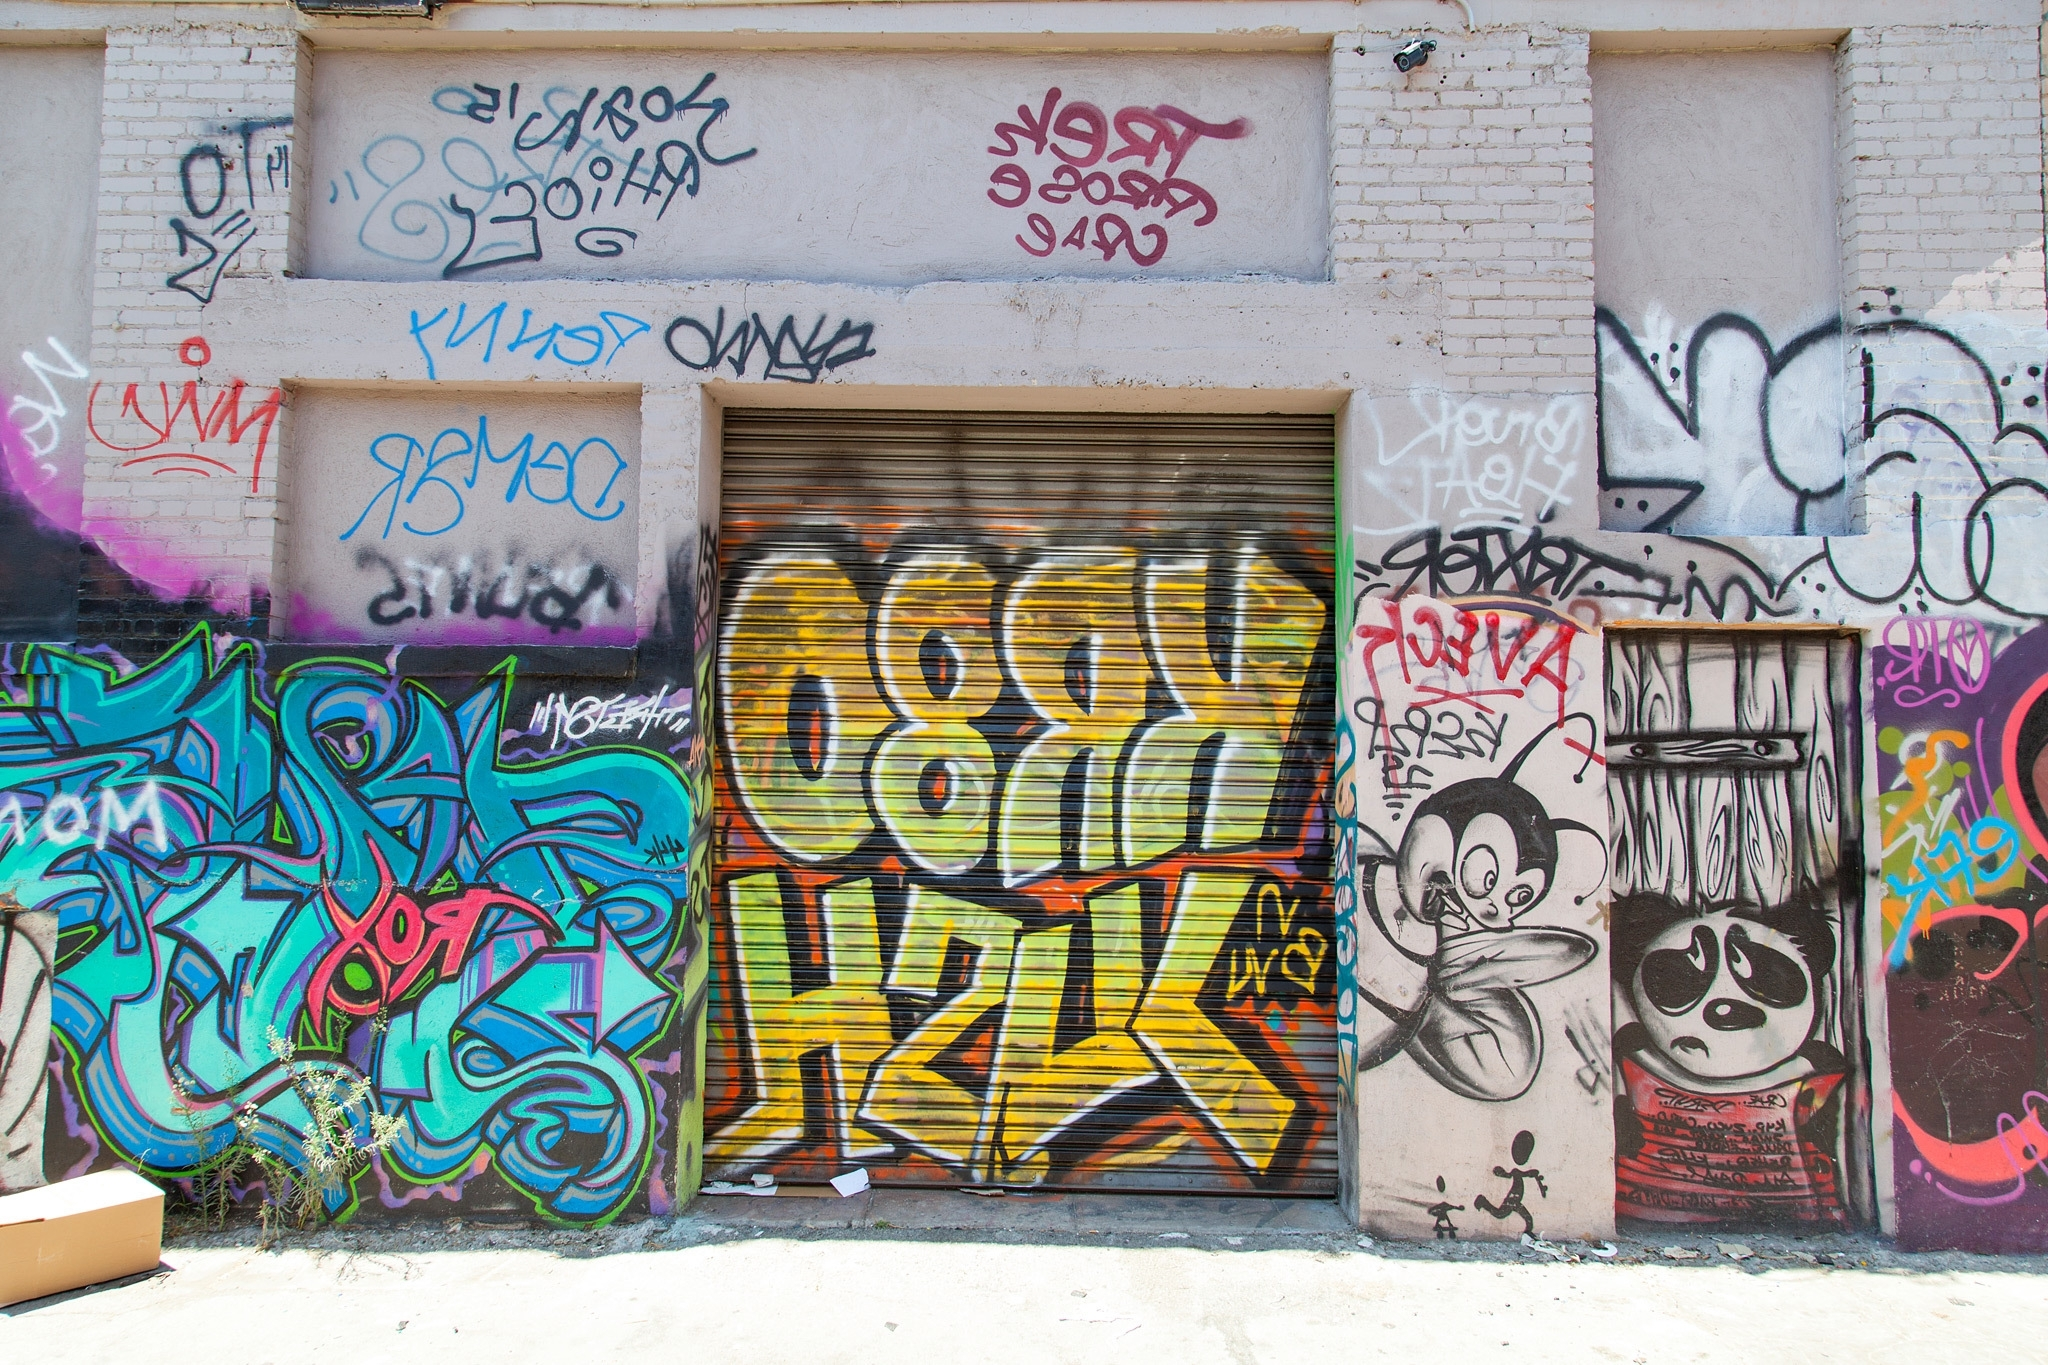 Los Angeles Wall Art Pertaining To Most Recently Released Best Graffiti And Street Art That We've Seen In Los Angeles (View 8 of 15)